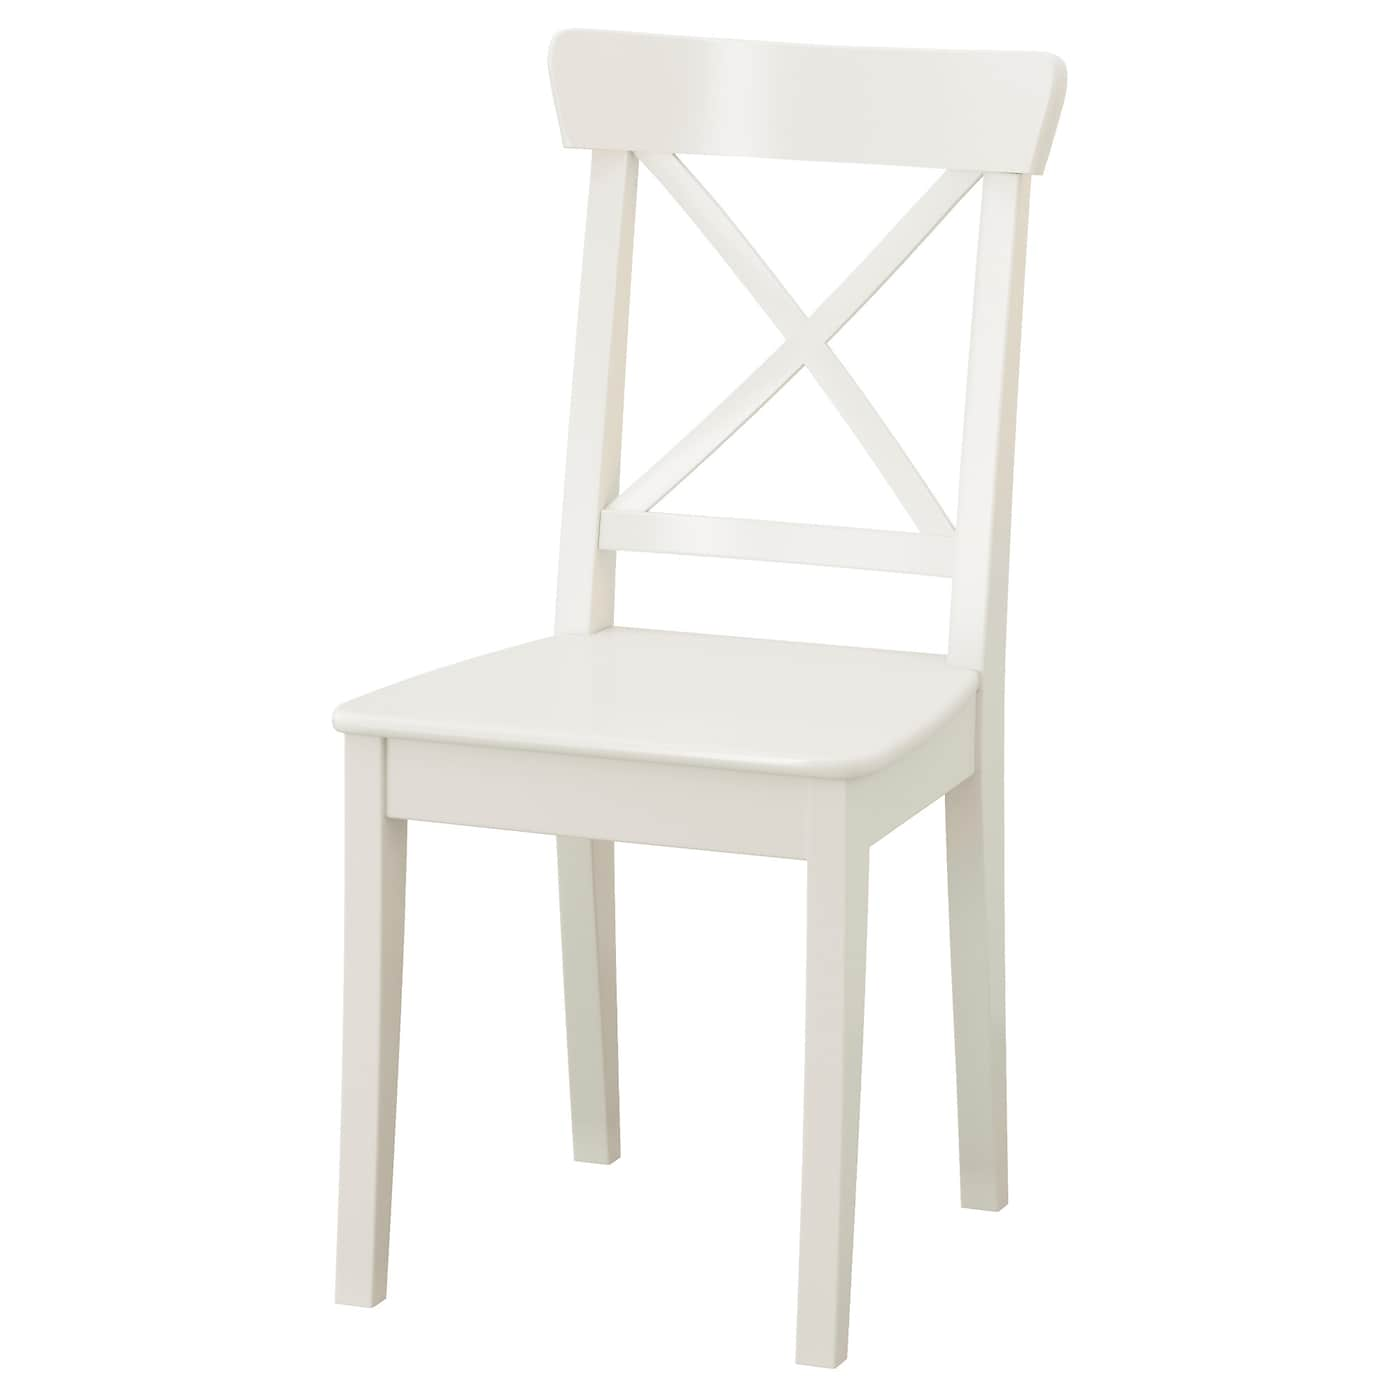 Dining chairs kitchen ikea